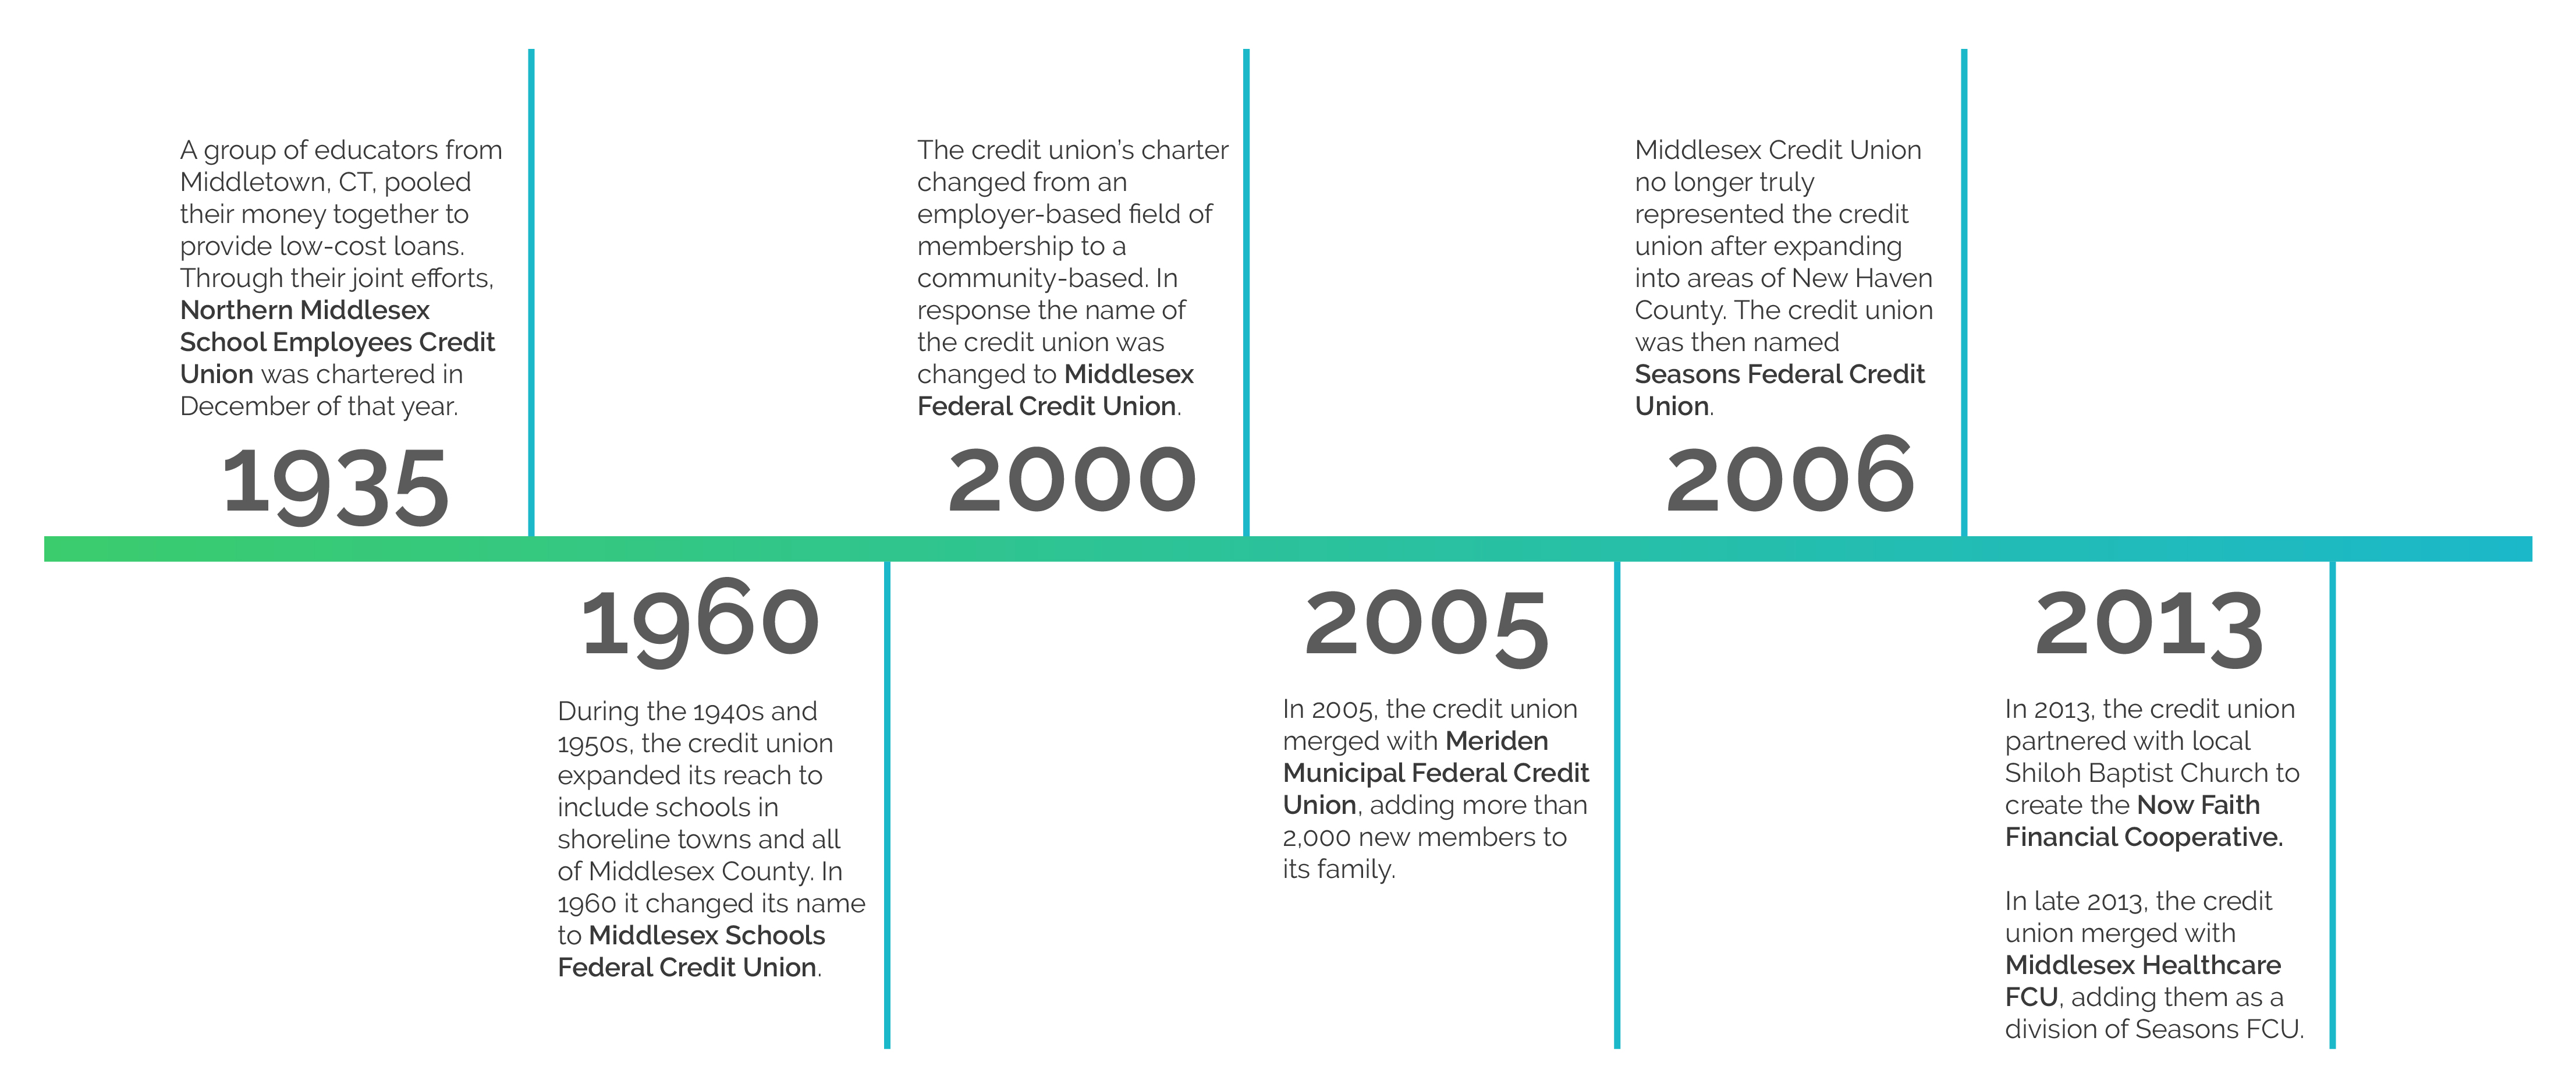 Timeline of accomplishments over the years